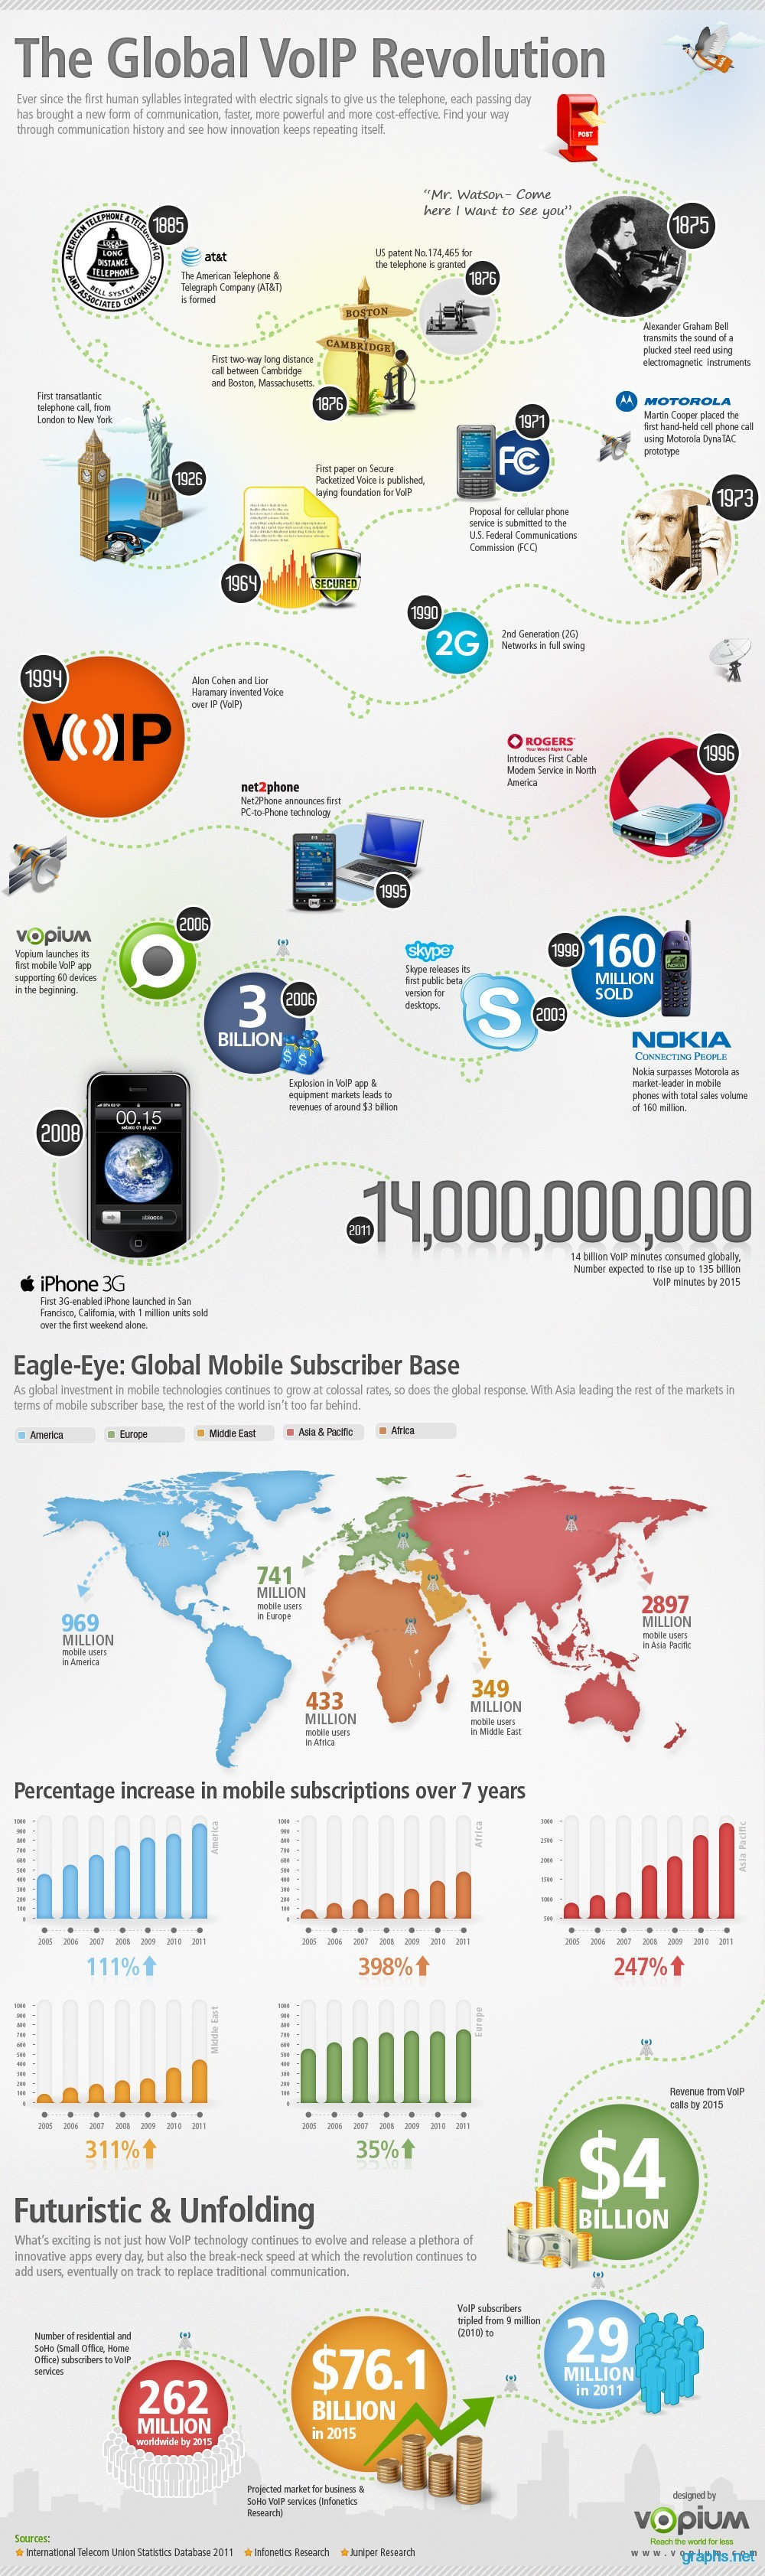 History of Global VoIP